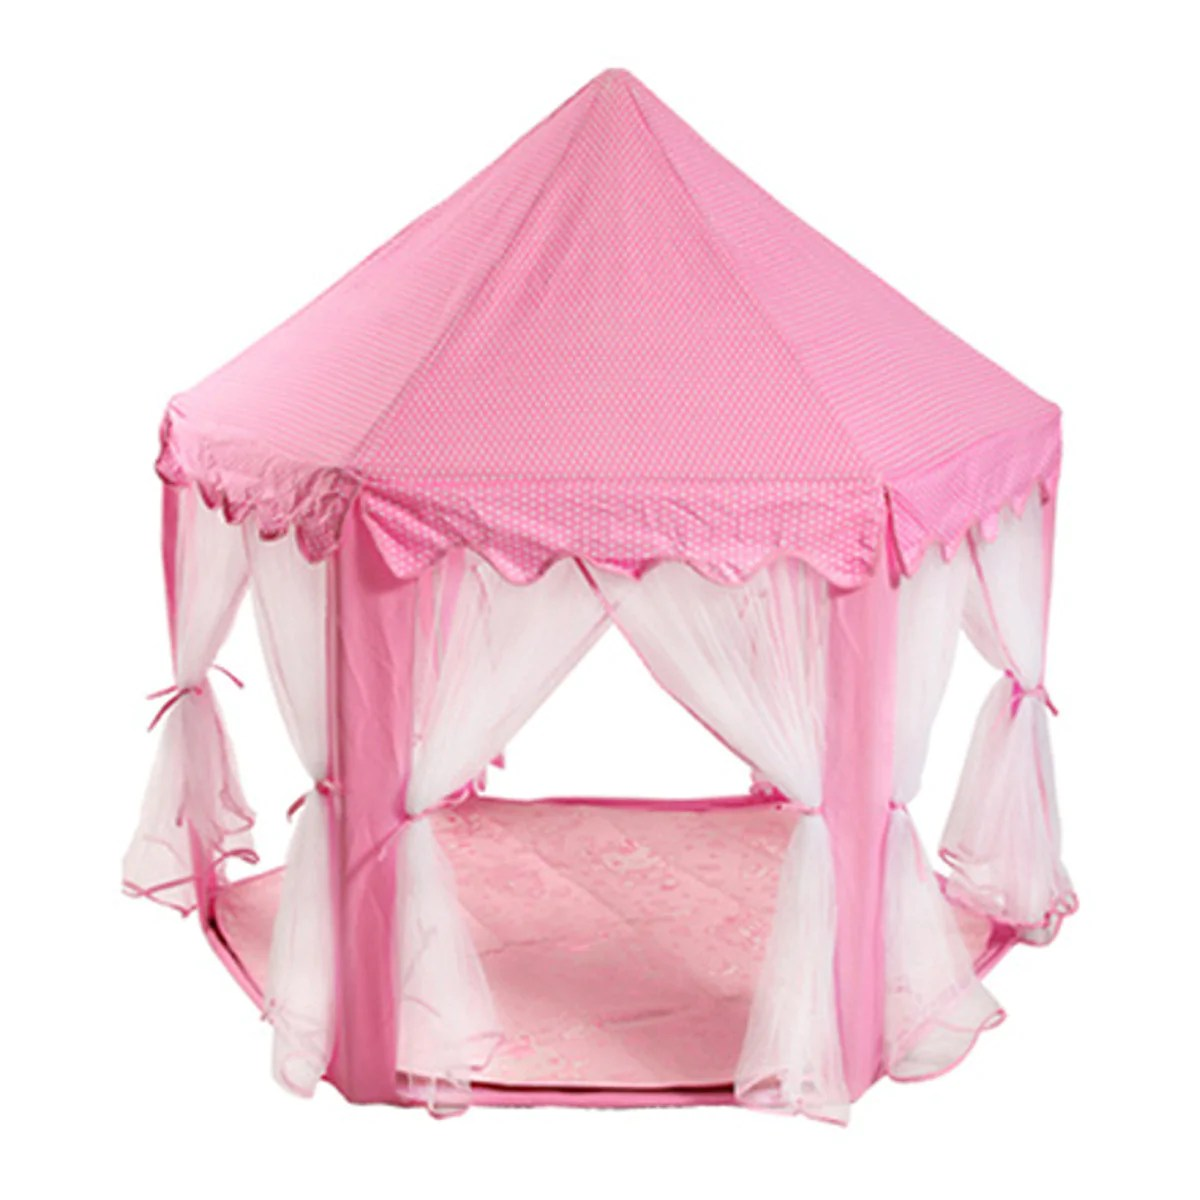 Alluring Girls Pink Princess Playhouse Children Kids Play Tent Beach Tentfor Children Kids Girls Pink Princess Playhouse Children Kids Play Tent baby Kids Play Tent